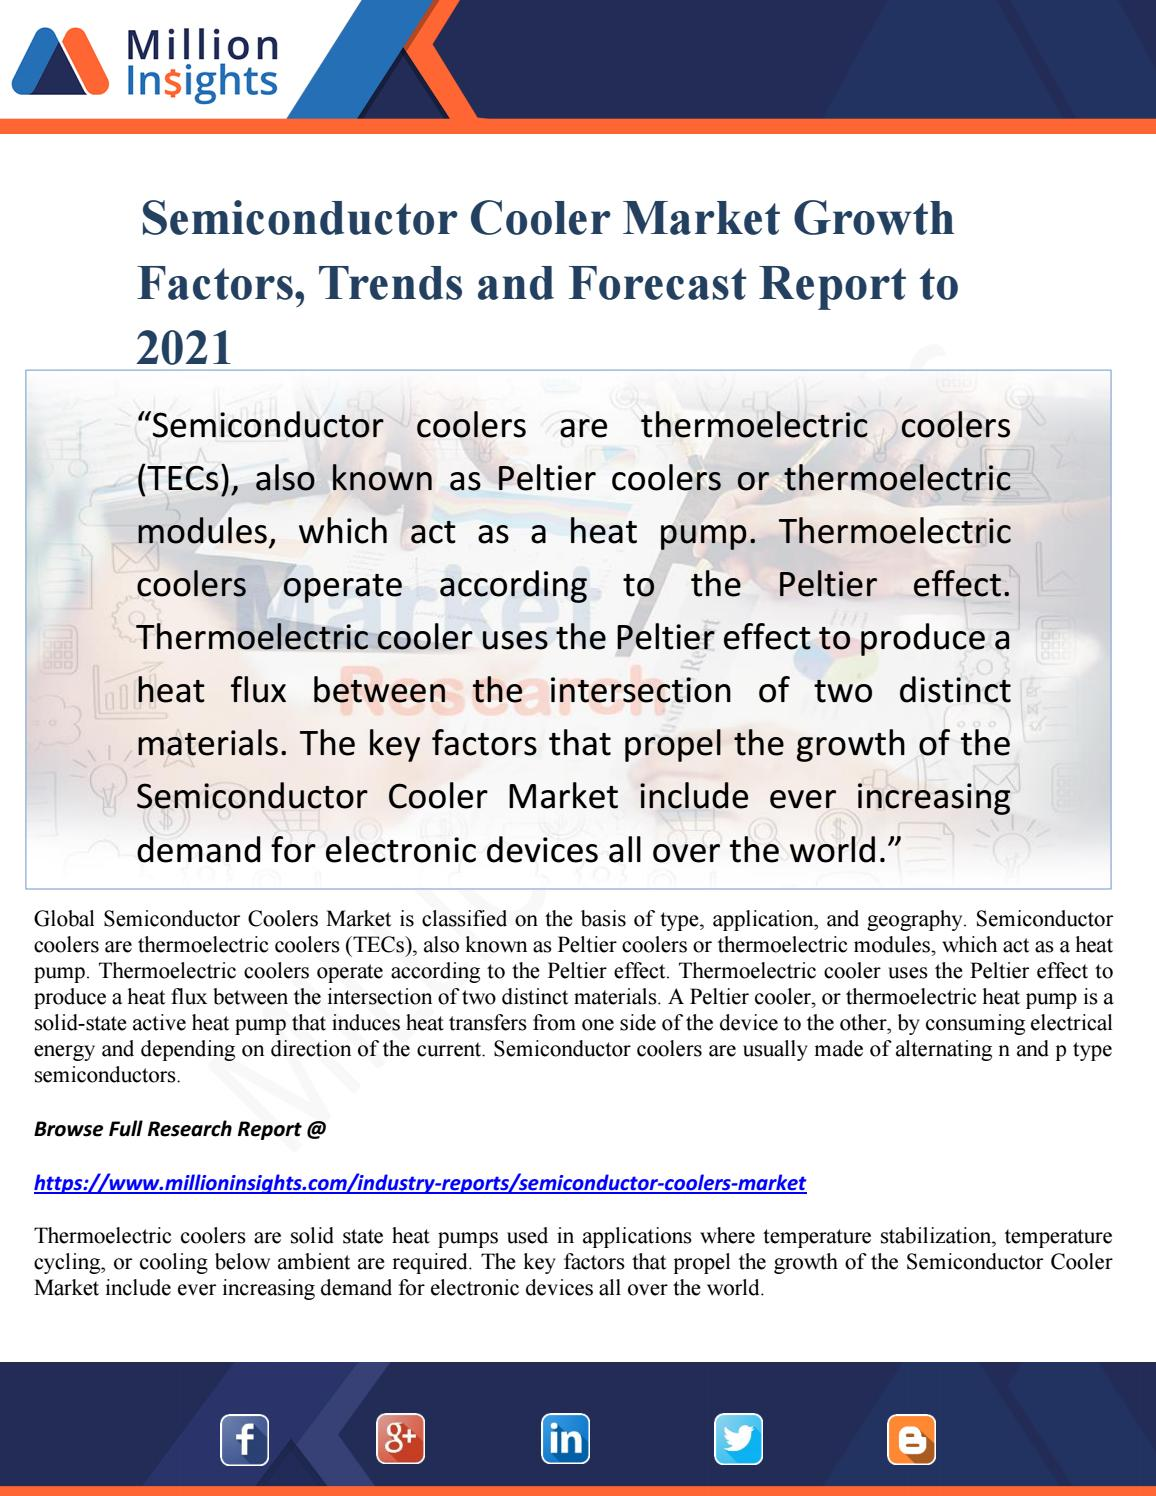 Semiconductor cooler market growth factors, trends and forecast